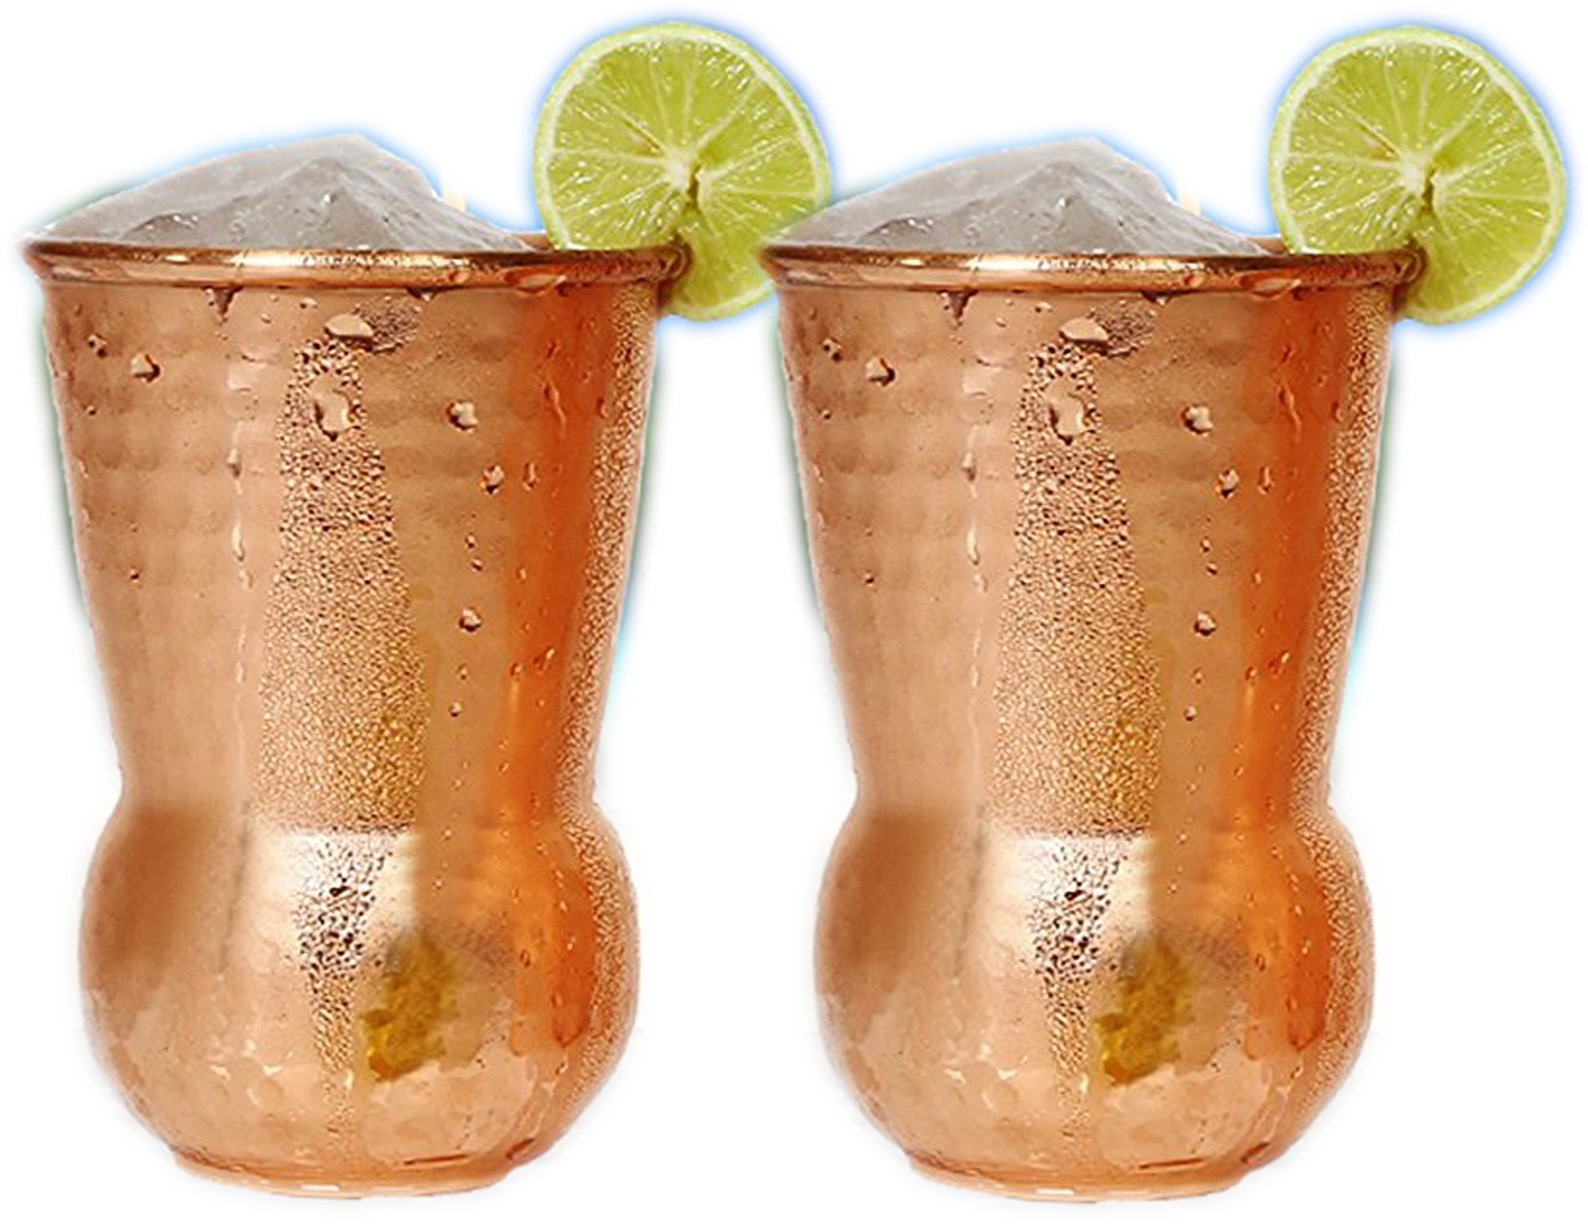 Hand Hammered Pure Copper Tumbler Moscow Mule Mugs Copper Tumbler Cups pure copper glass for mule cocktail beverages soft drinks Handcrafted Copper Set of 2